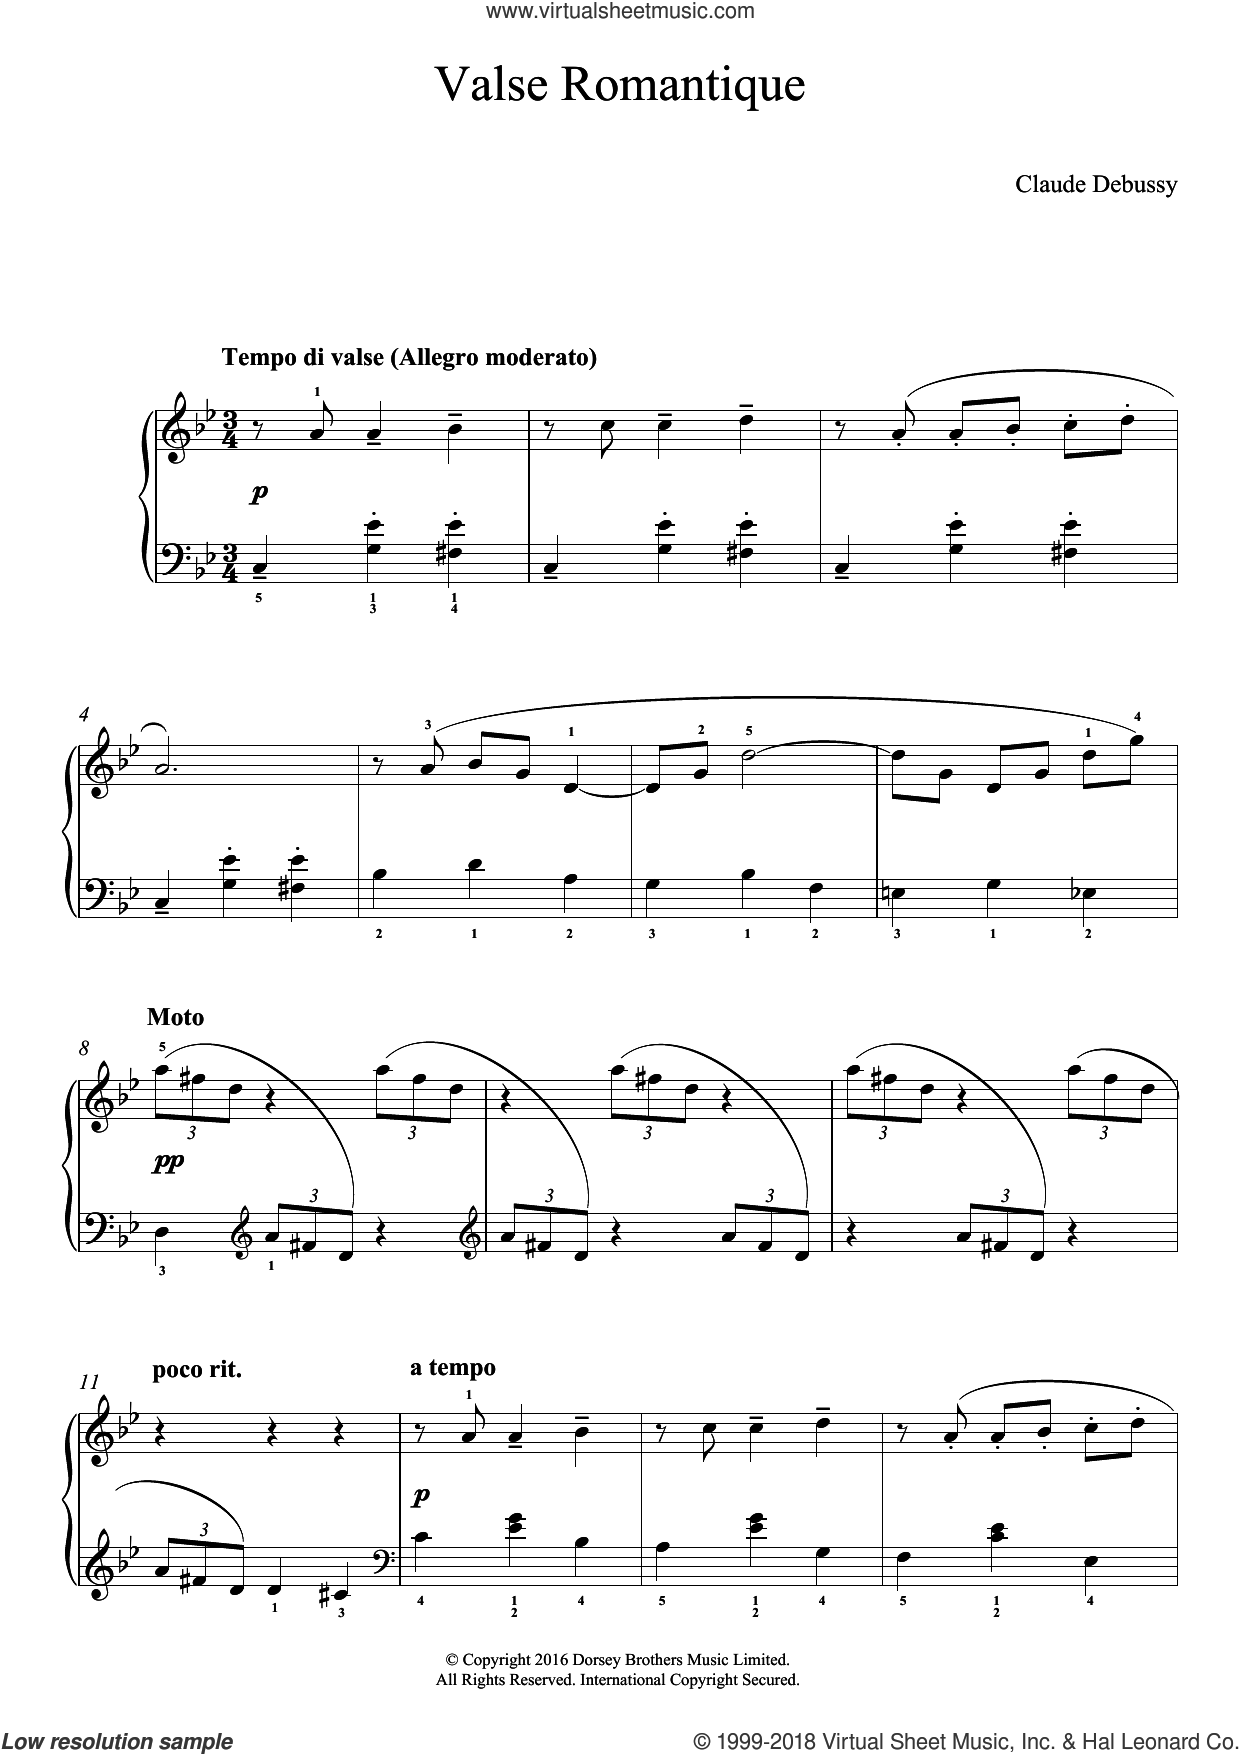 Valse Romantique sheet music for piano solo by Claude Debussy, classical score, easy skill level